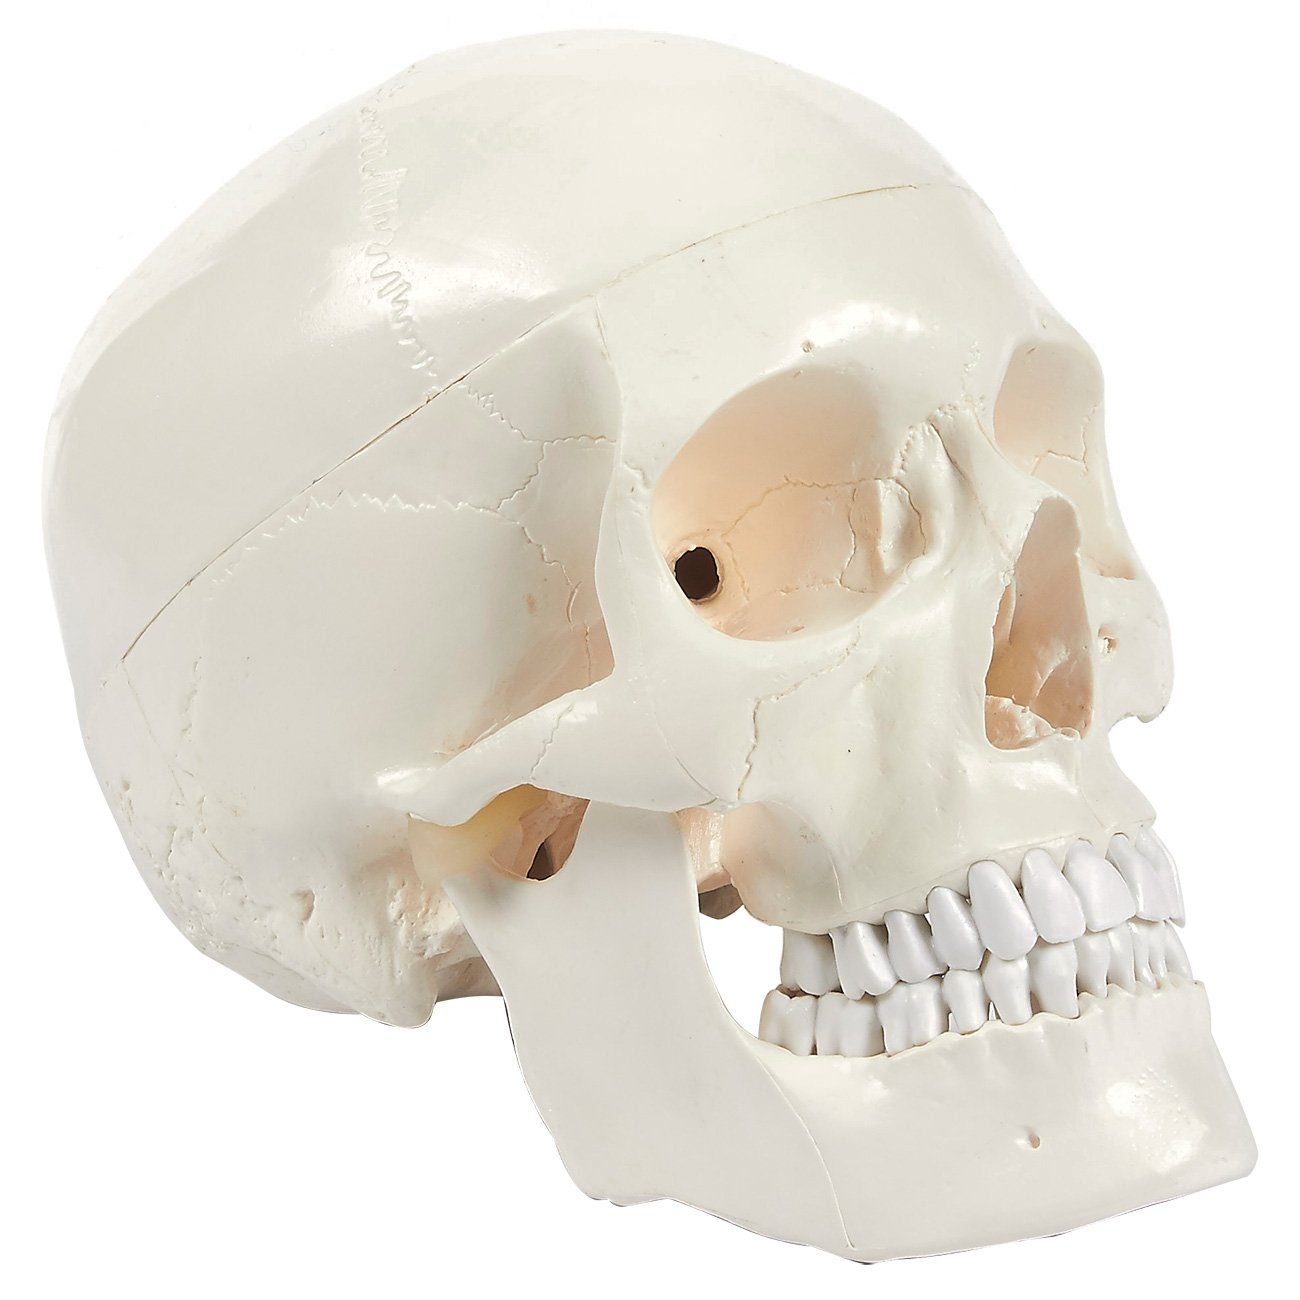 Human Skull Model - Removeable Skull Cap and Articulated Mandible - Anatomical Model   White, 8 x 6.2 x 4.75 Inches Juvale